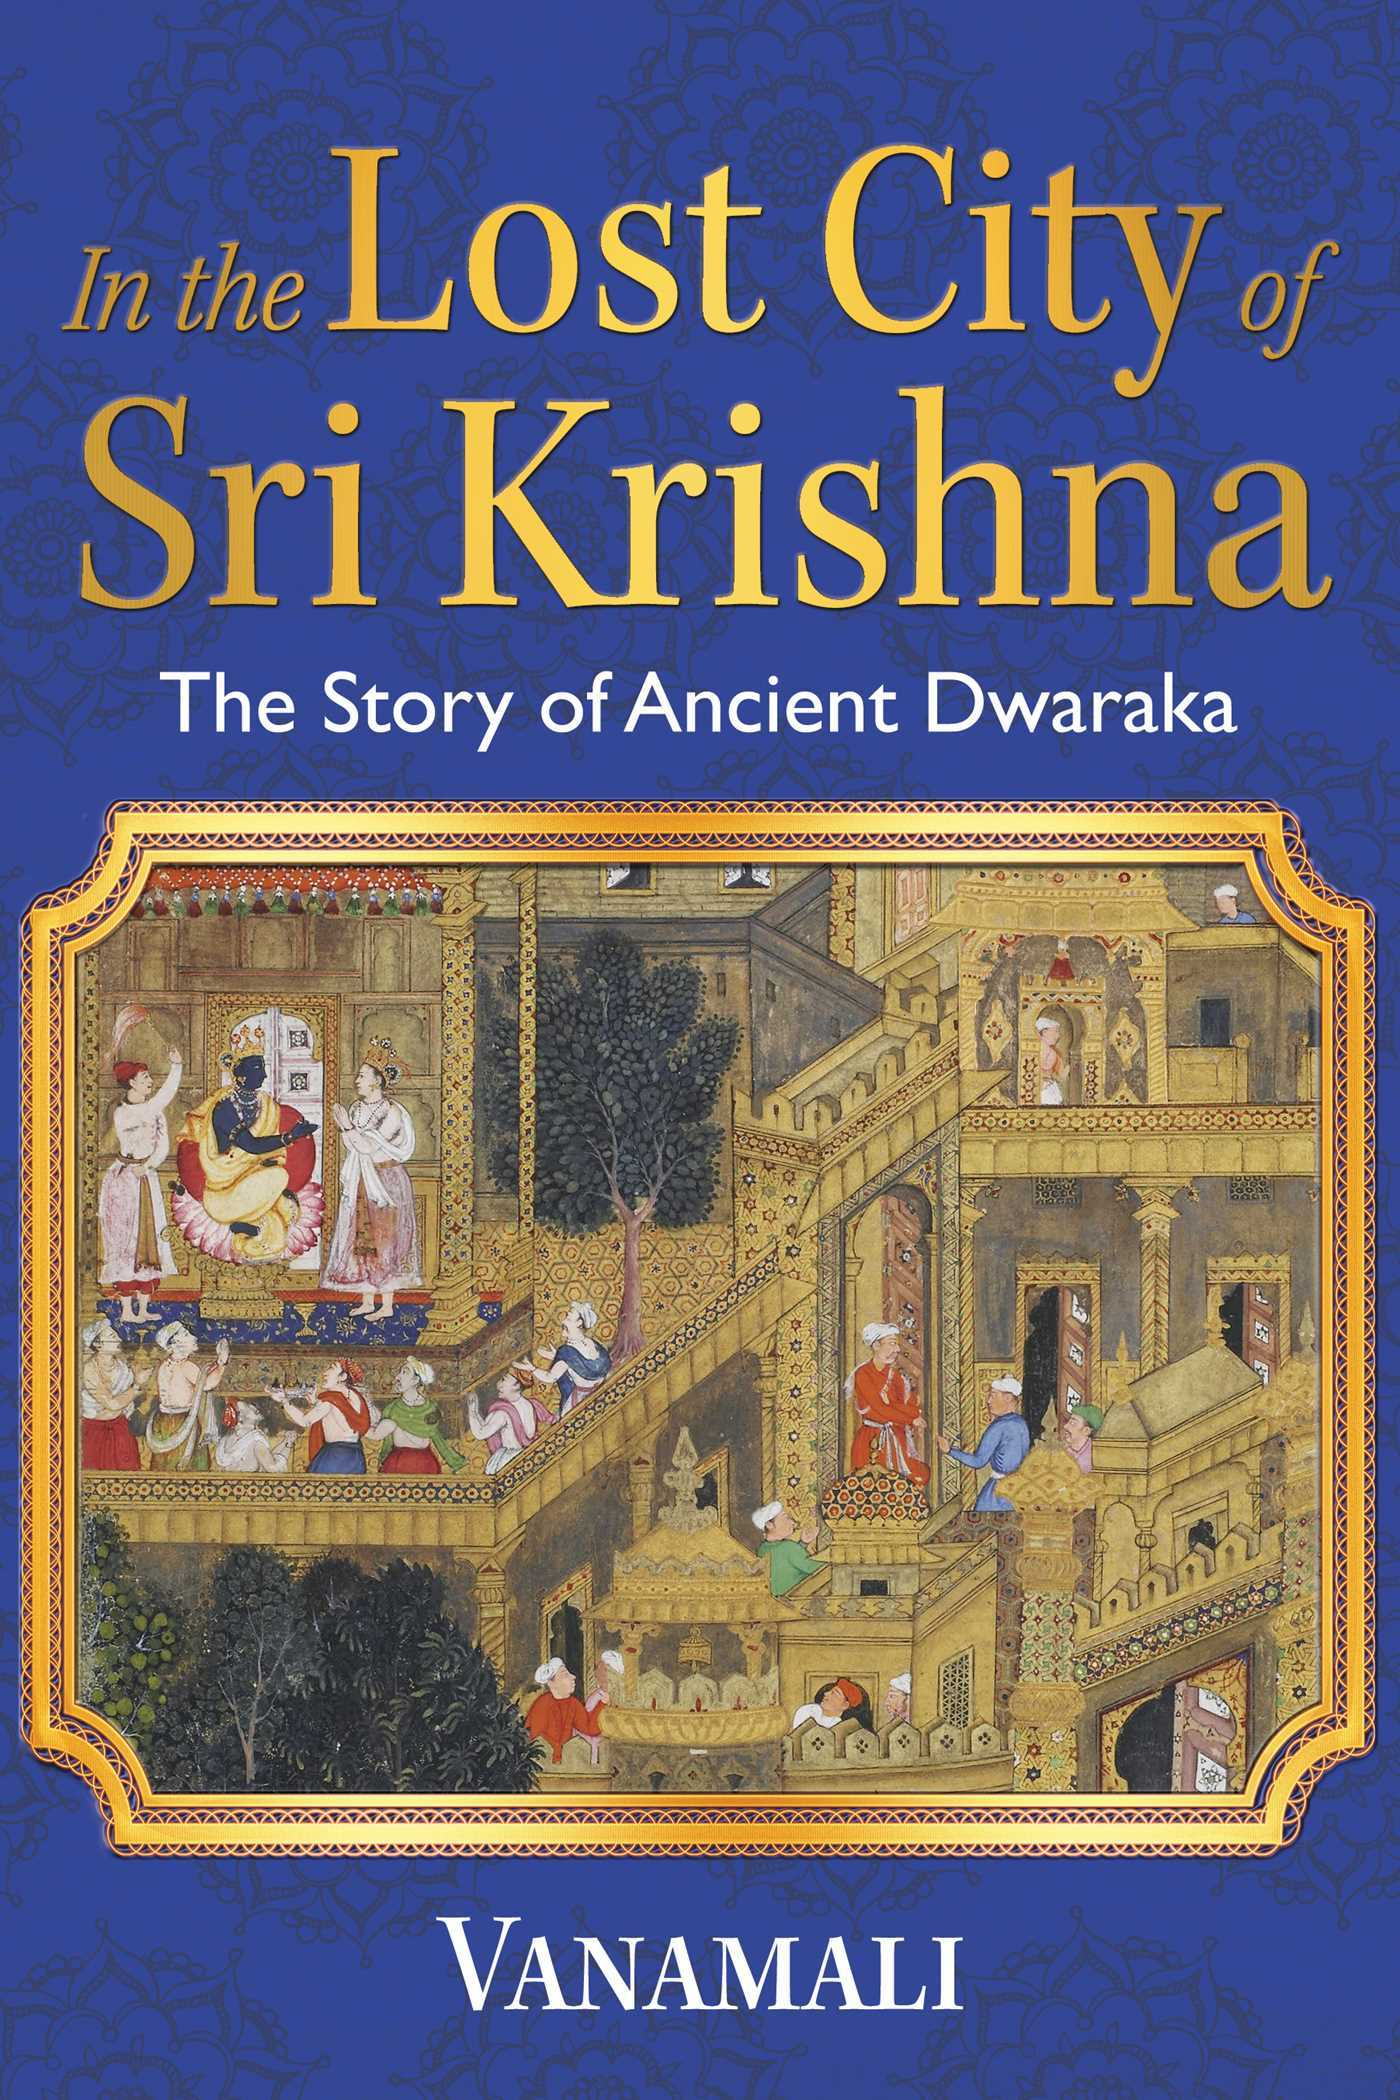 In the Lost City of Sri Krishna The Story of Ancient Dwaraka